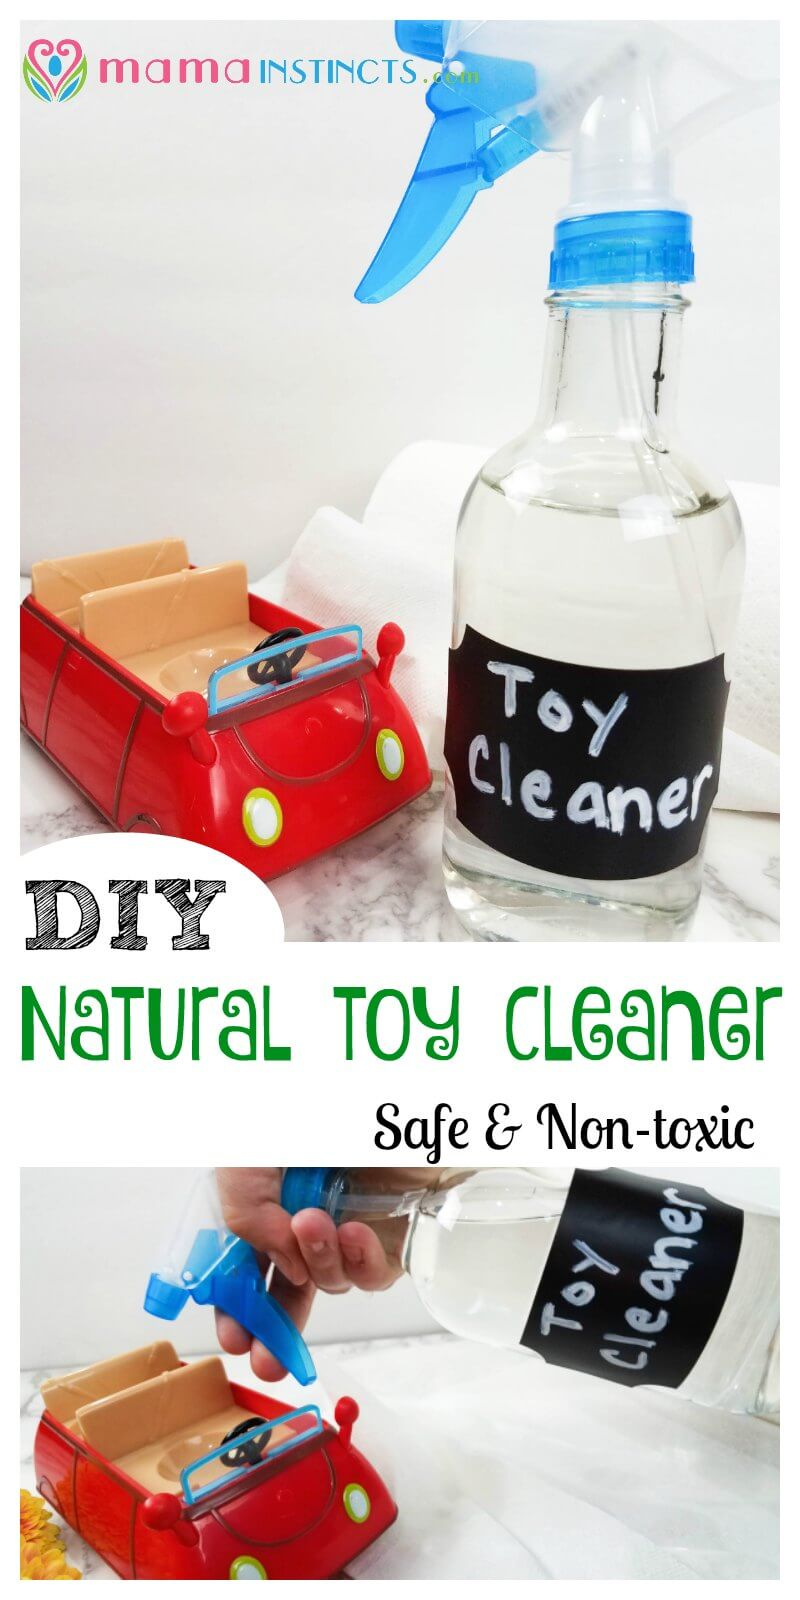 How To Clean Baby Toys And Surfaces Safely The Science